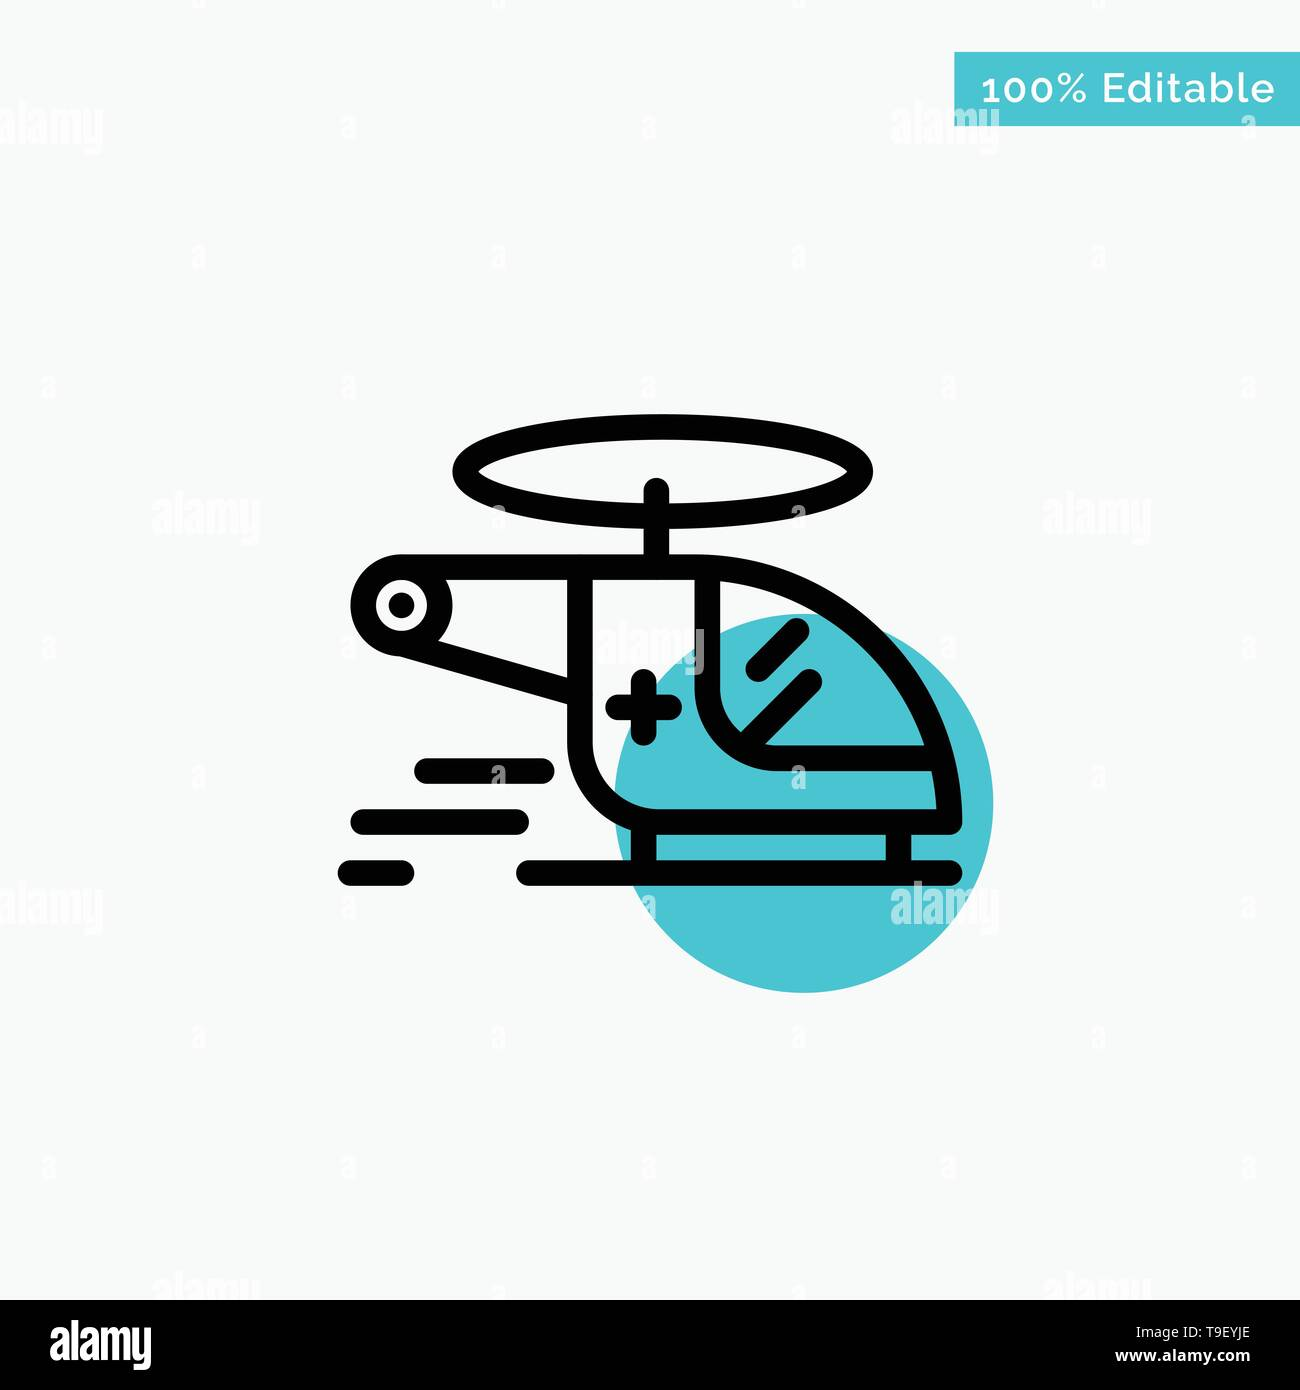 Helicopter, Chopper, Medical, Ambulance, Air turquoise highlight circle point Vector icon - Stock Image